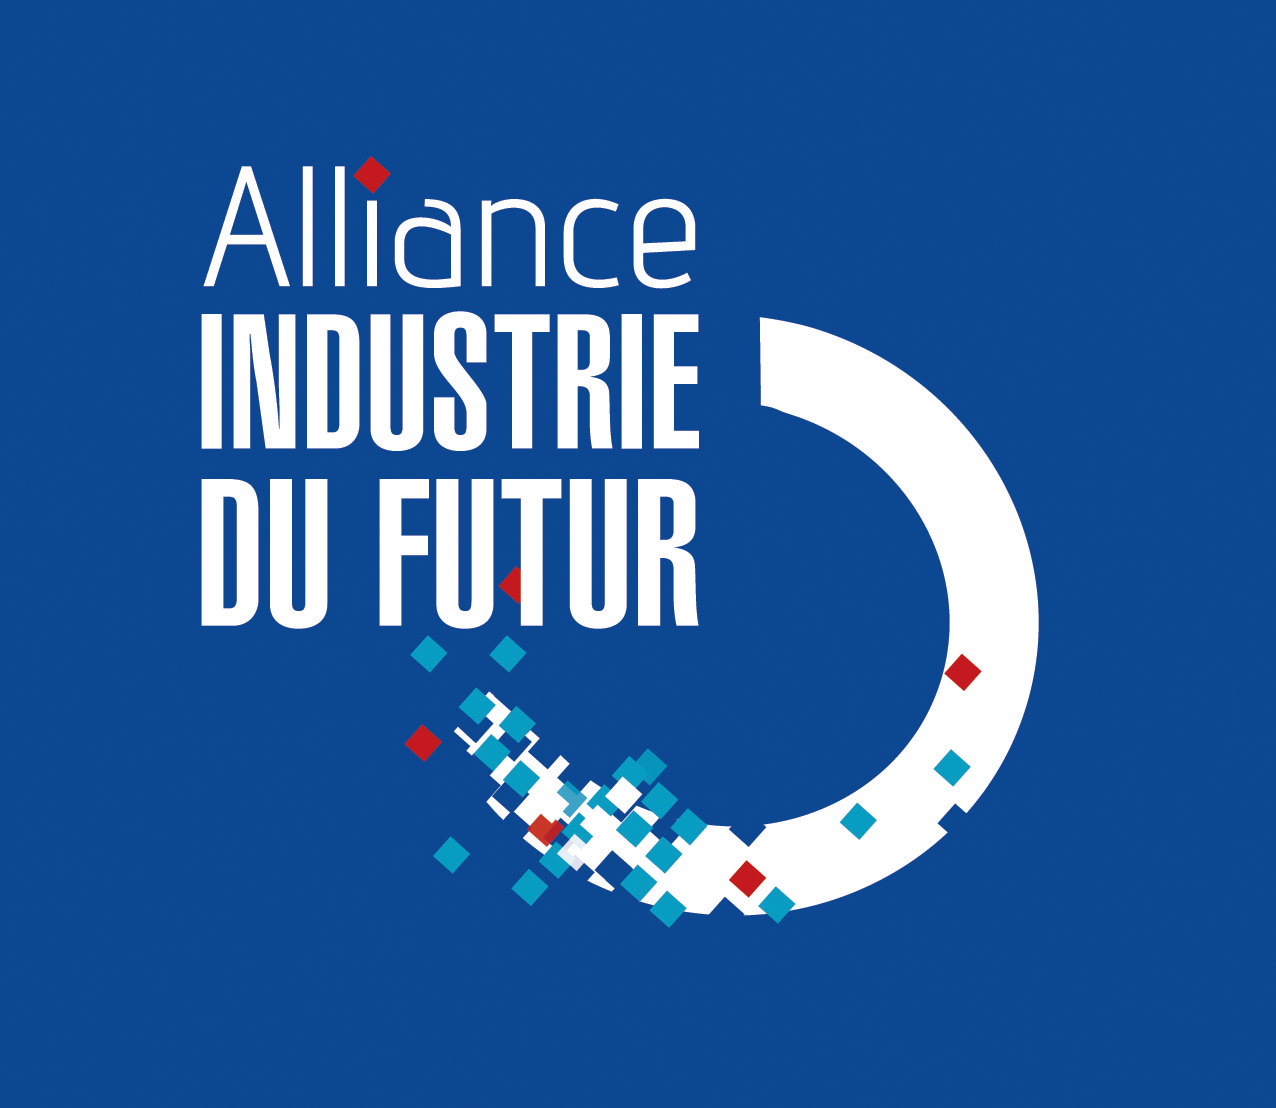 logo-Alliance industrie du futur-ok